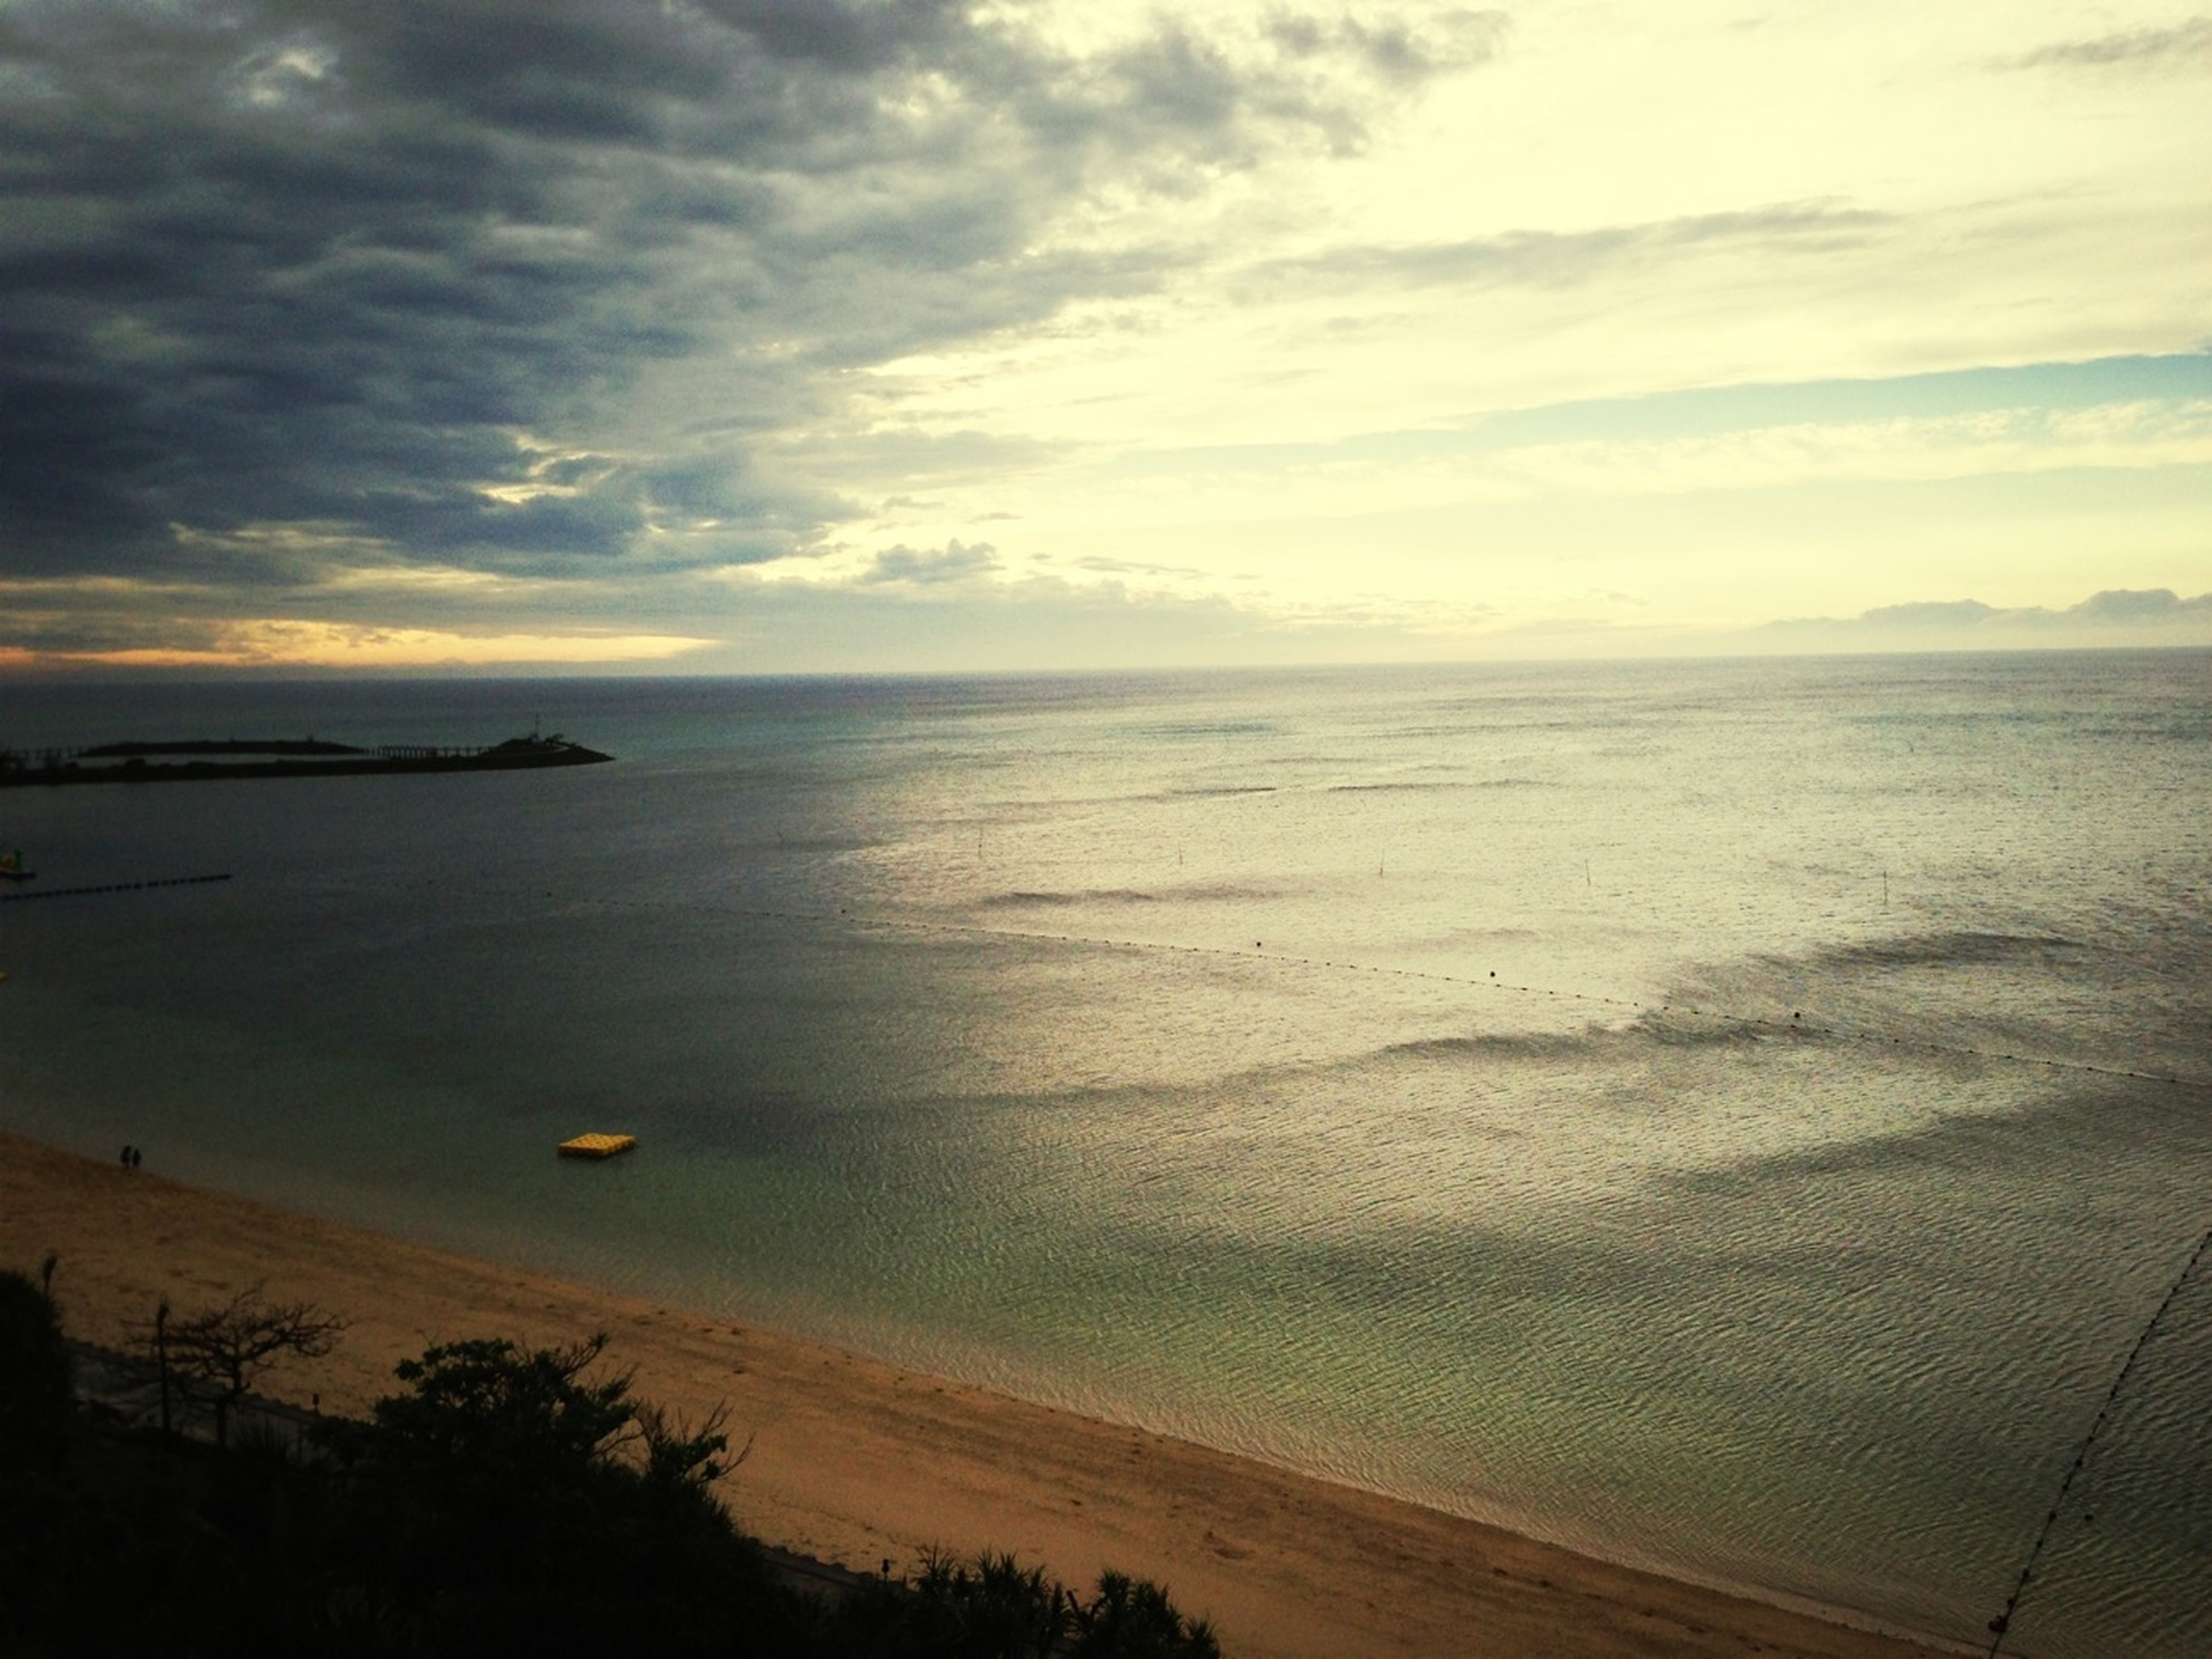 sea, horizon over water, beach, sky, water, tranquil scene, scenics, tranquility, shore, beauty in nature, sand, nature, cloud - sky, idyllic, sunset, cloud, coastline, cloudy, calm, remote